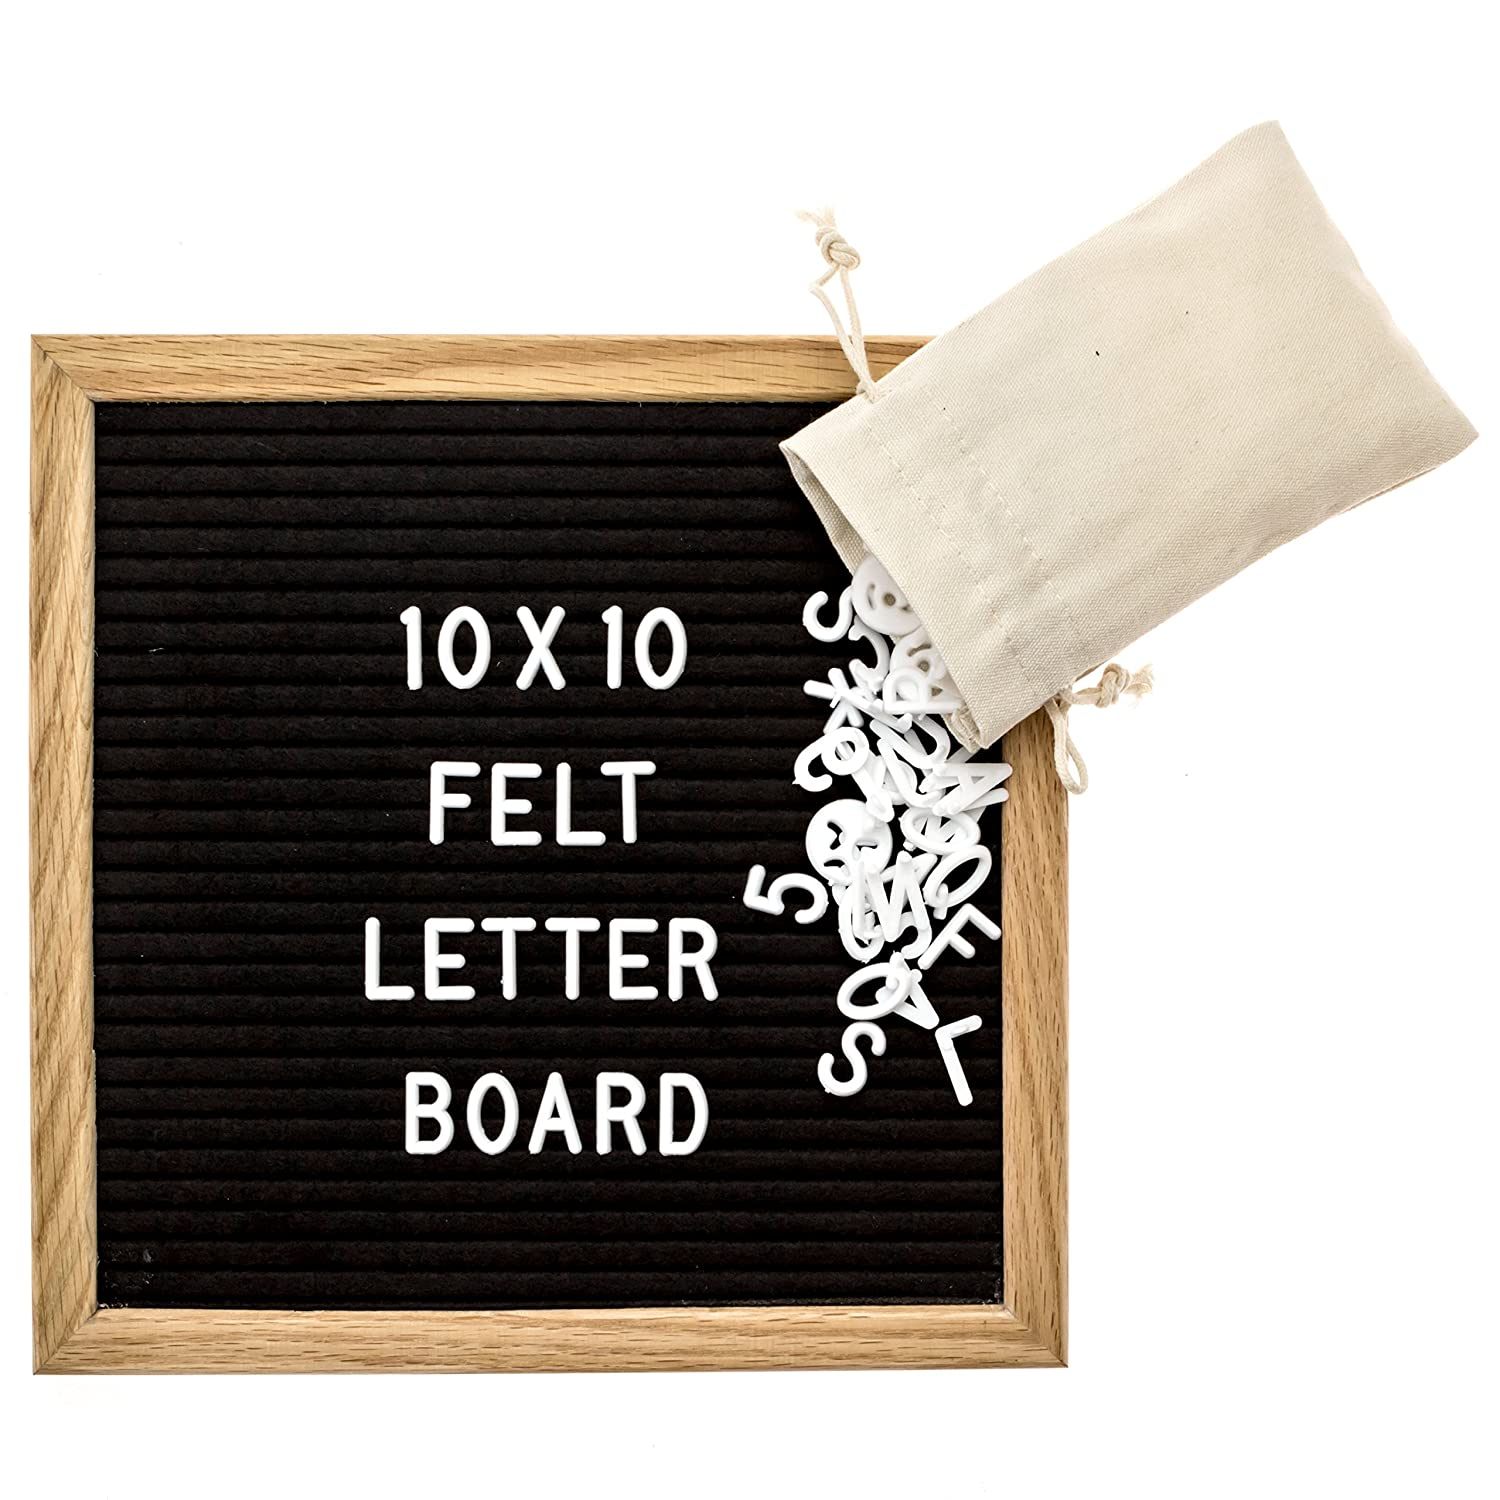 Black Felt Letter Board with 290 Letters, Numbers & Symbols,10x10 Inches, Changeable Wooden Message Board Sign, Natural Oak Wood Frame,Wall Mount, With Free Canvas Bag, By Barista Tools